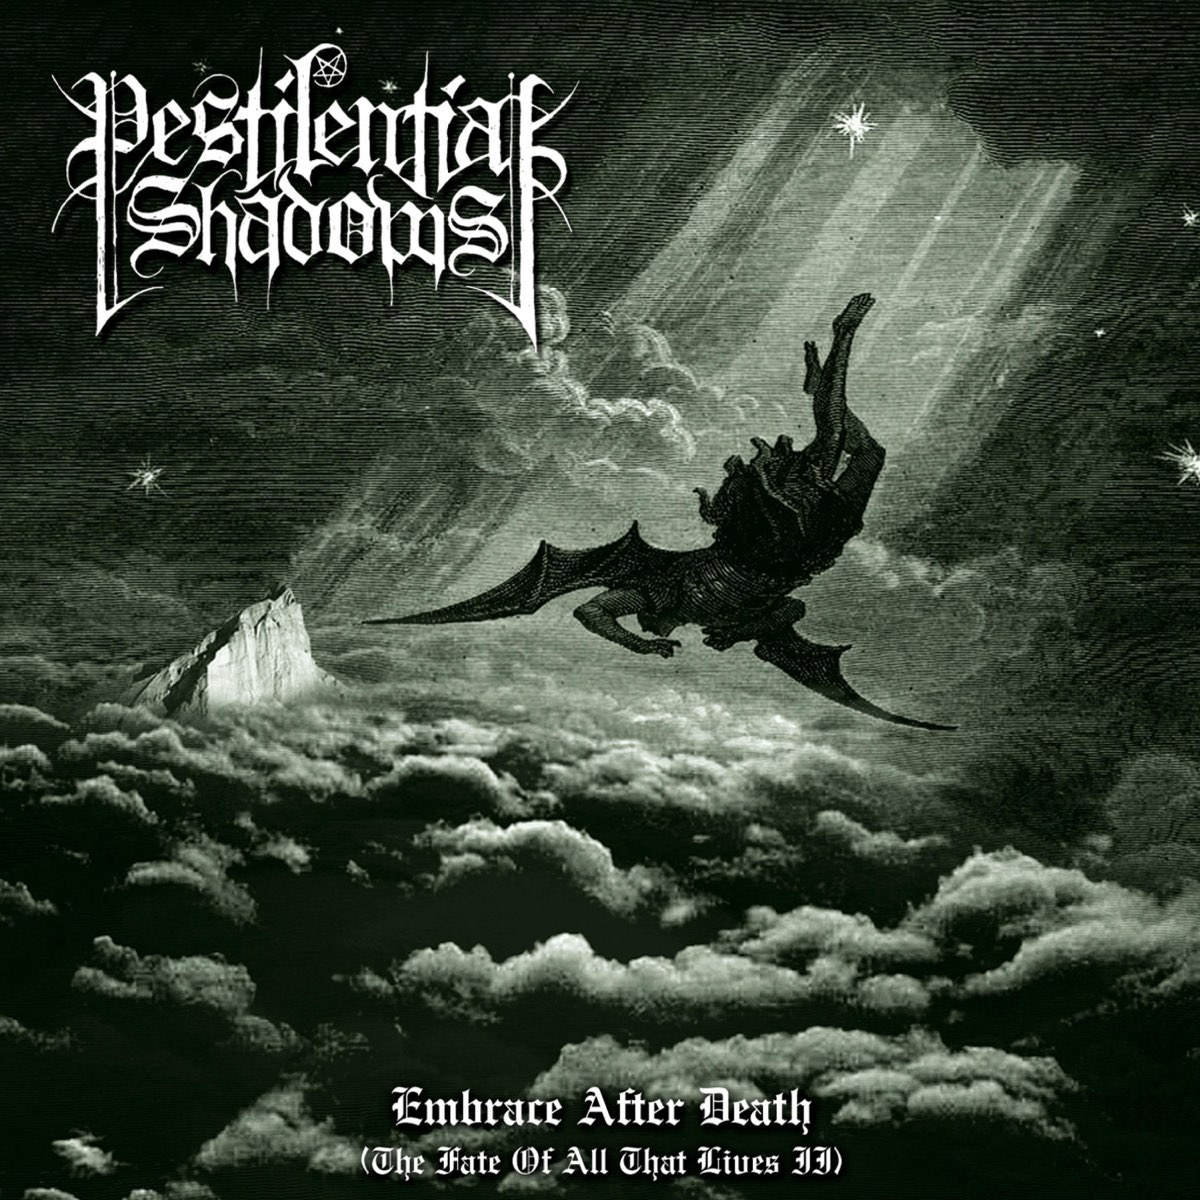 Review for Pestilential Shadows - Embrace After Death